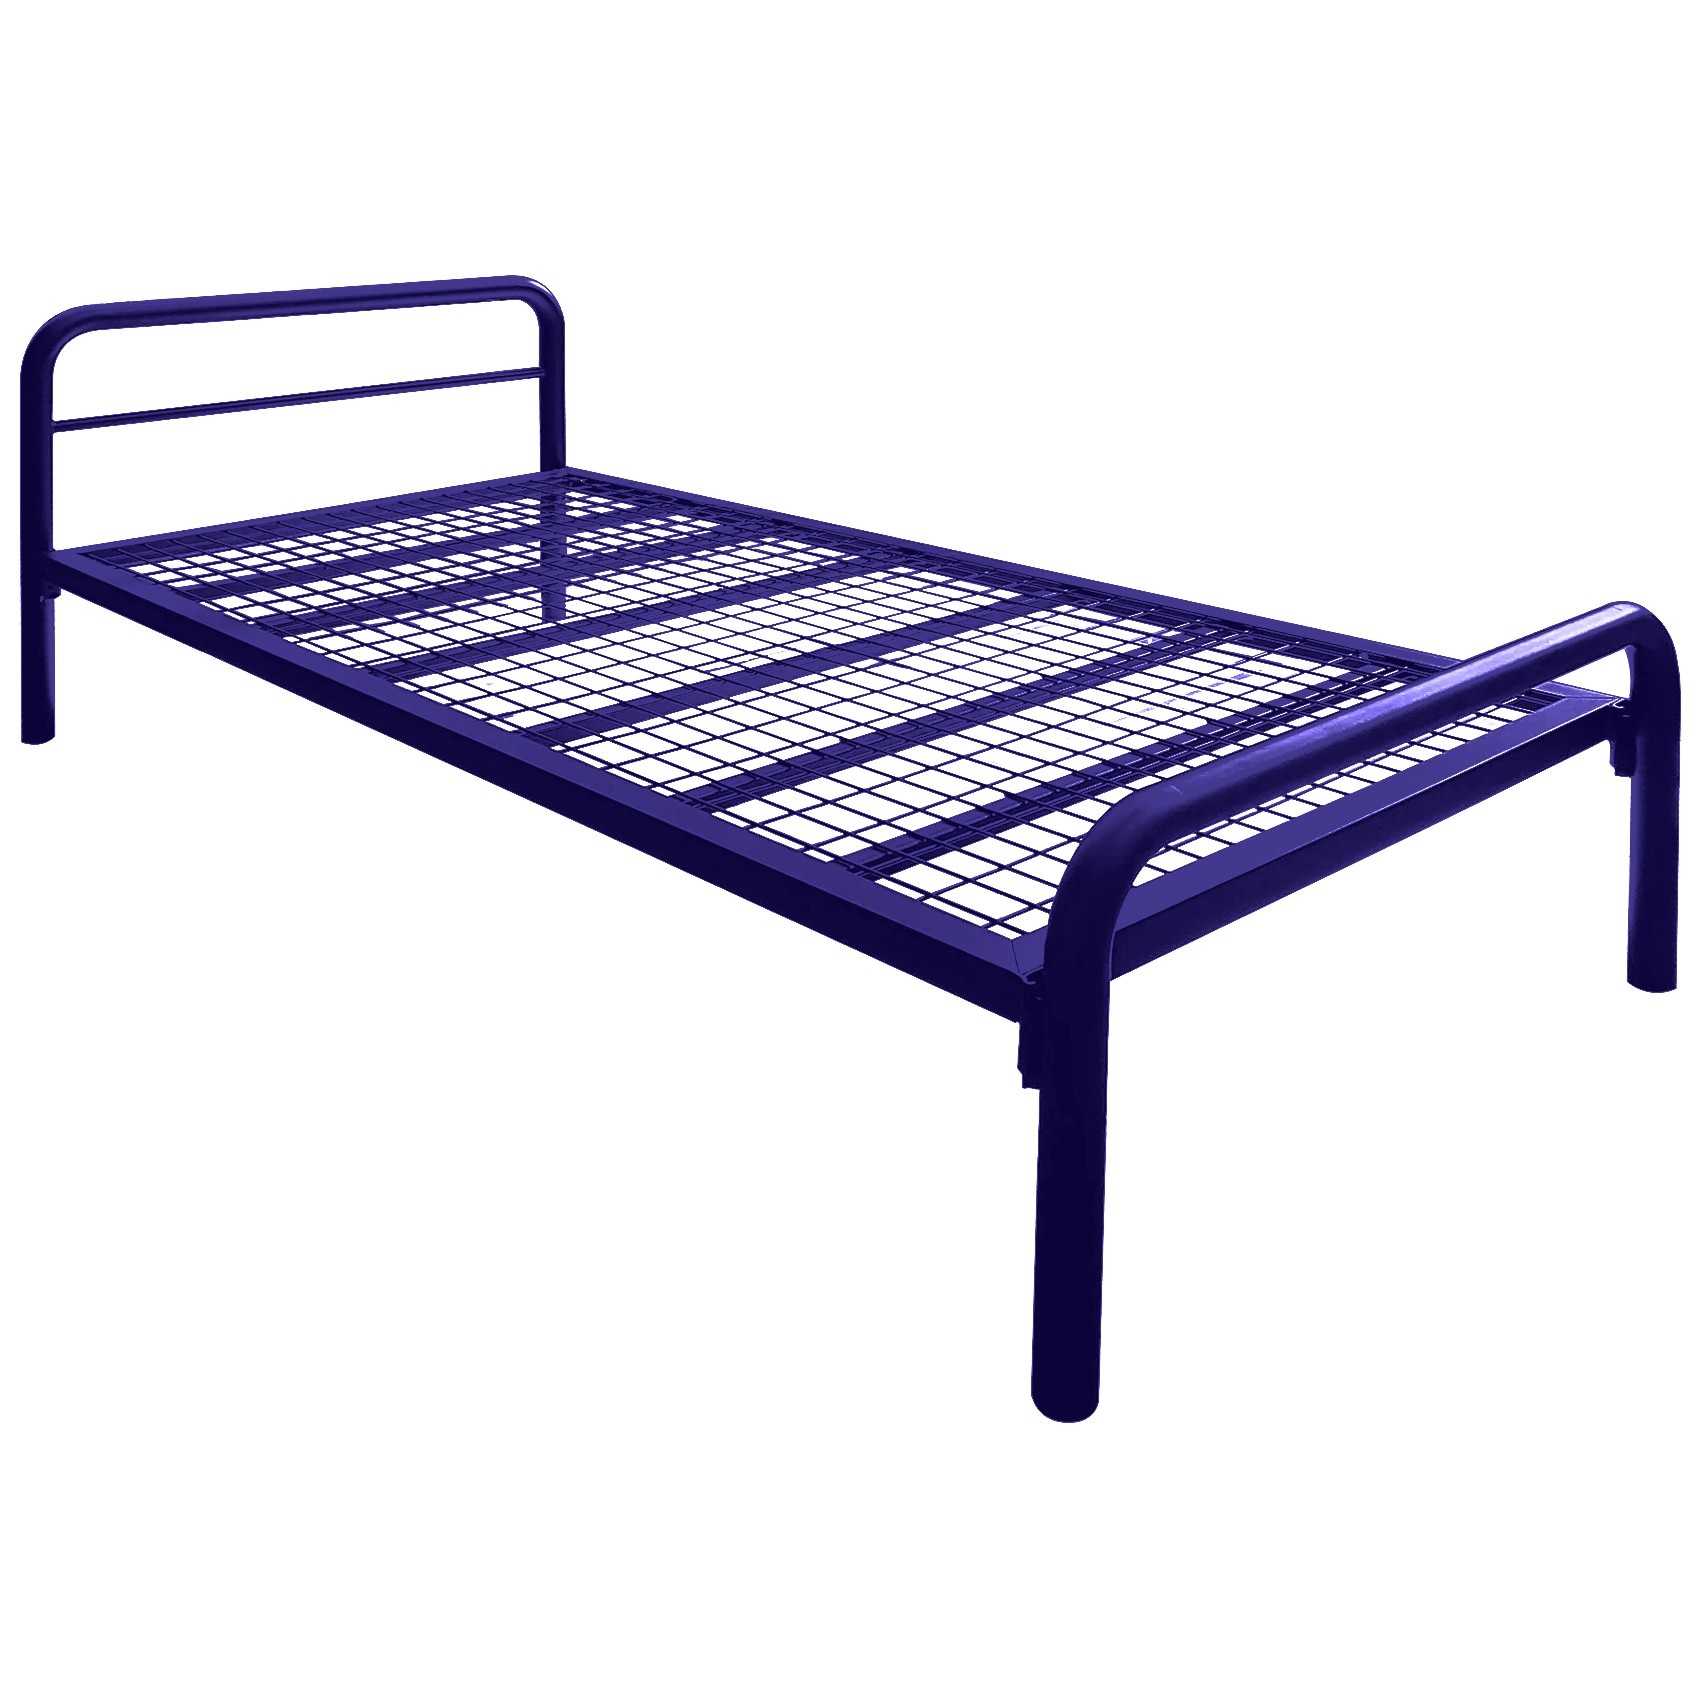 Tubeco Budget Australian Made Commercial Grade Metal Bed, King Single, Space Blue